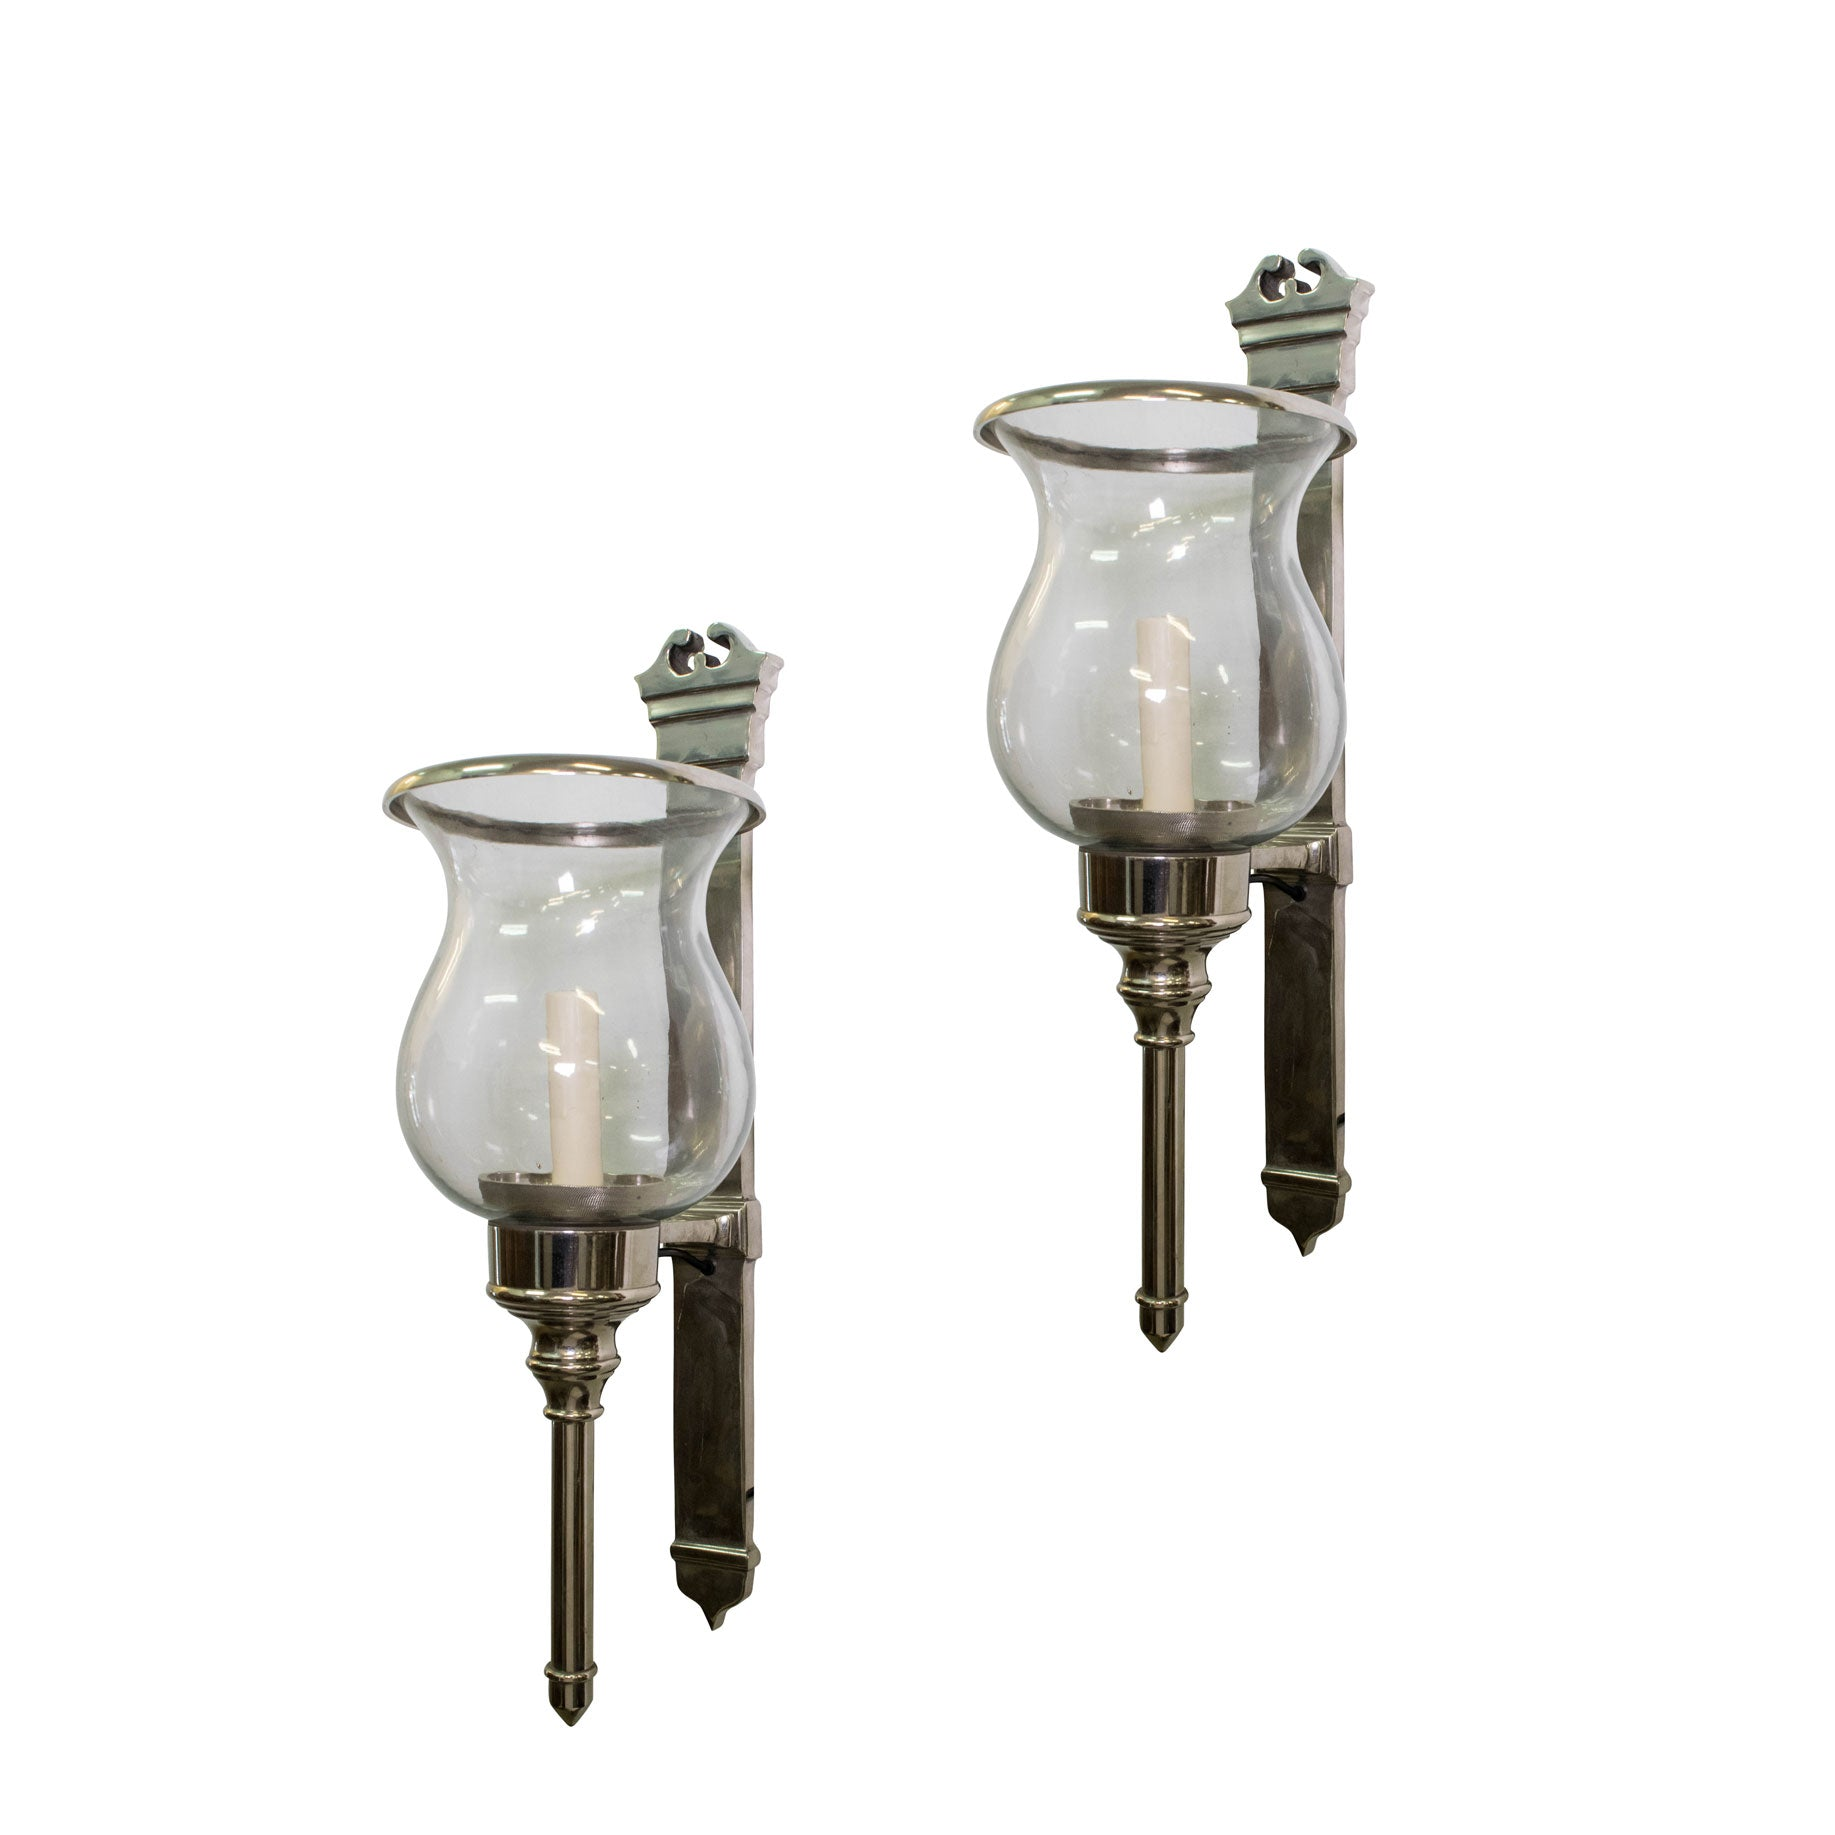 Pair of Nickel Finish Wall Sconces